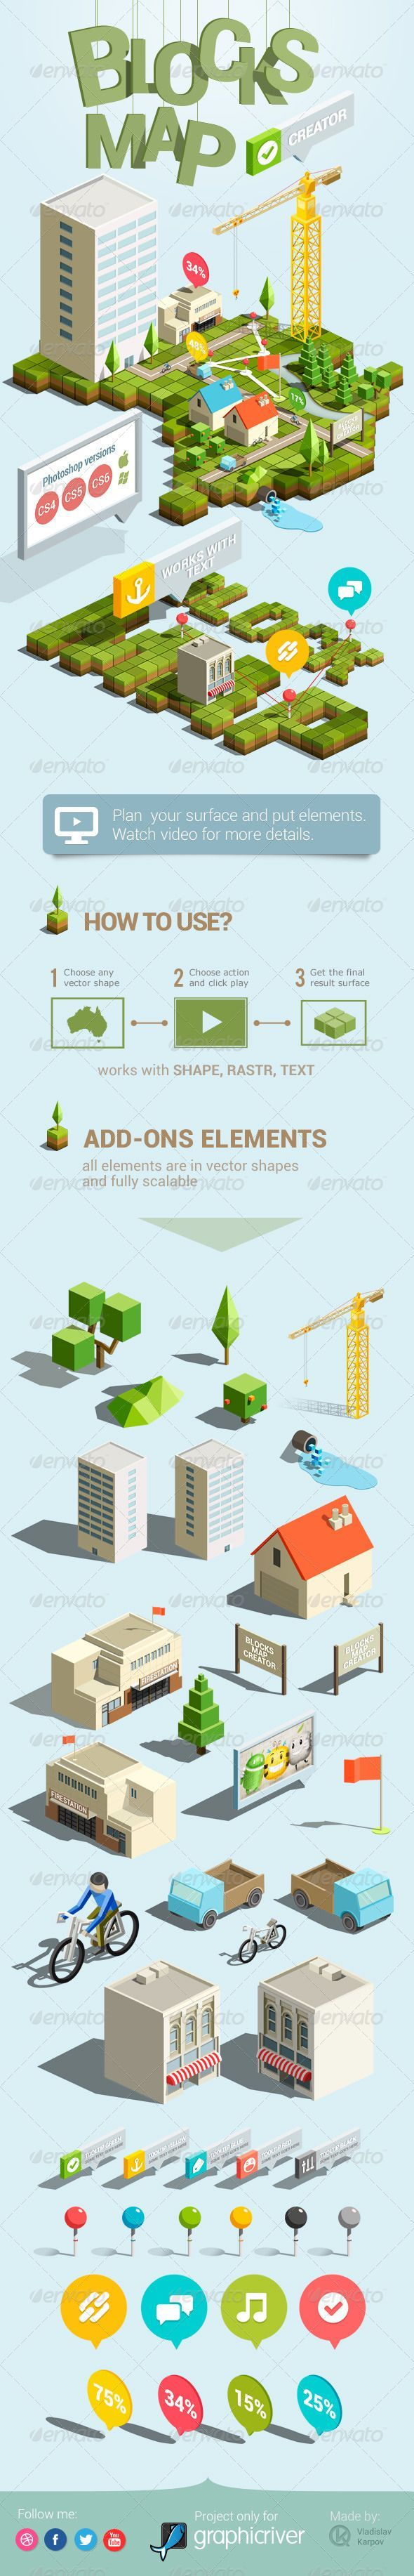 I really like the 3D graphics of the buildings, as even though it does add more depth to the infographic, it makes it looks more interesting to read, and as a whole look at. #infographics